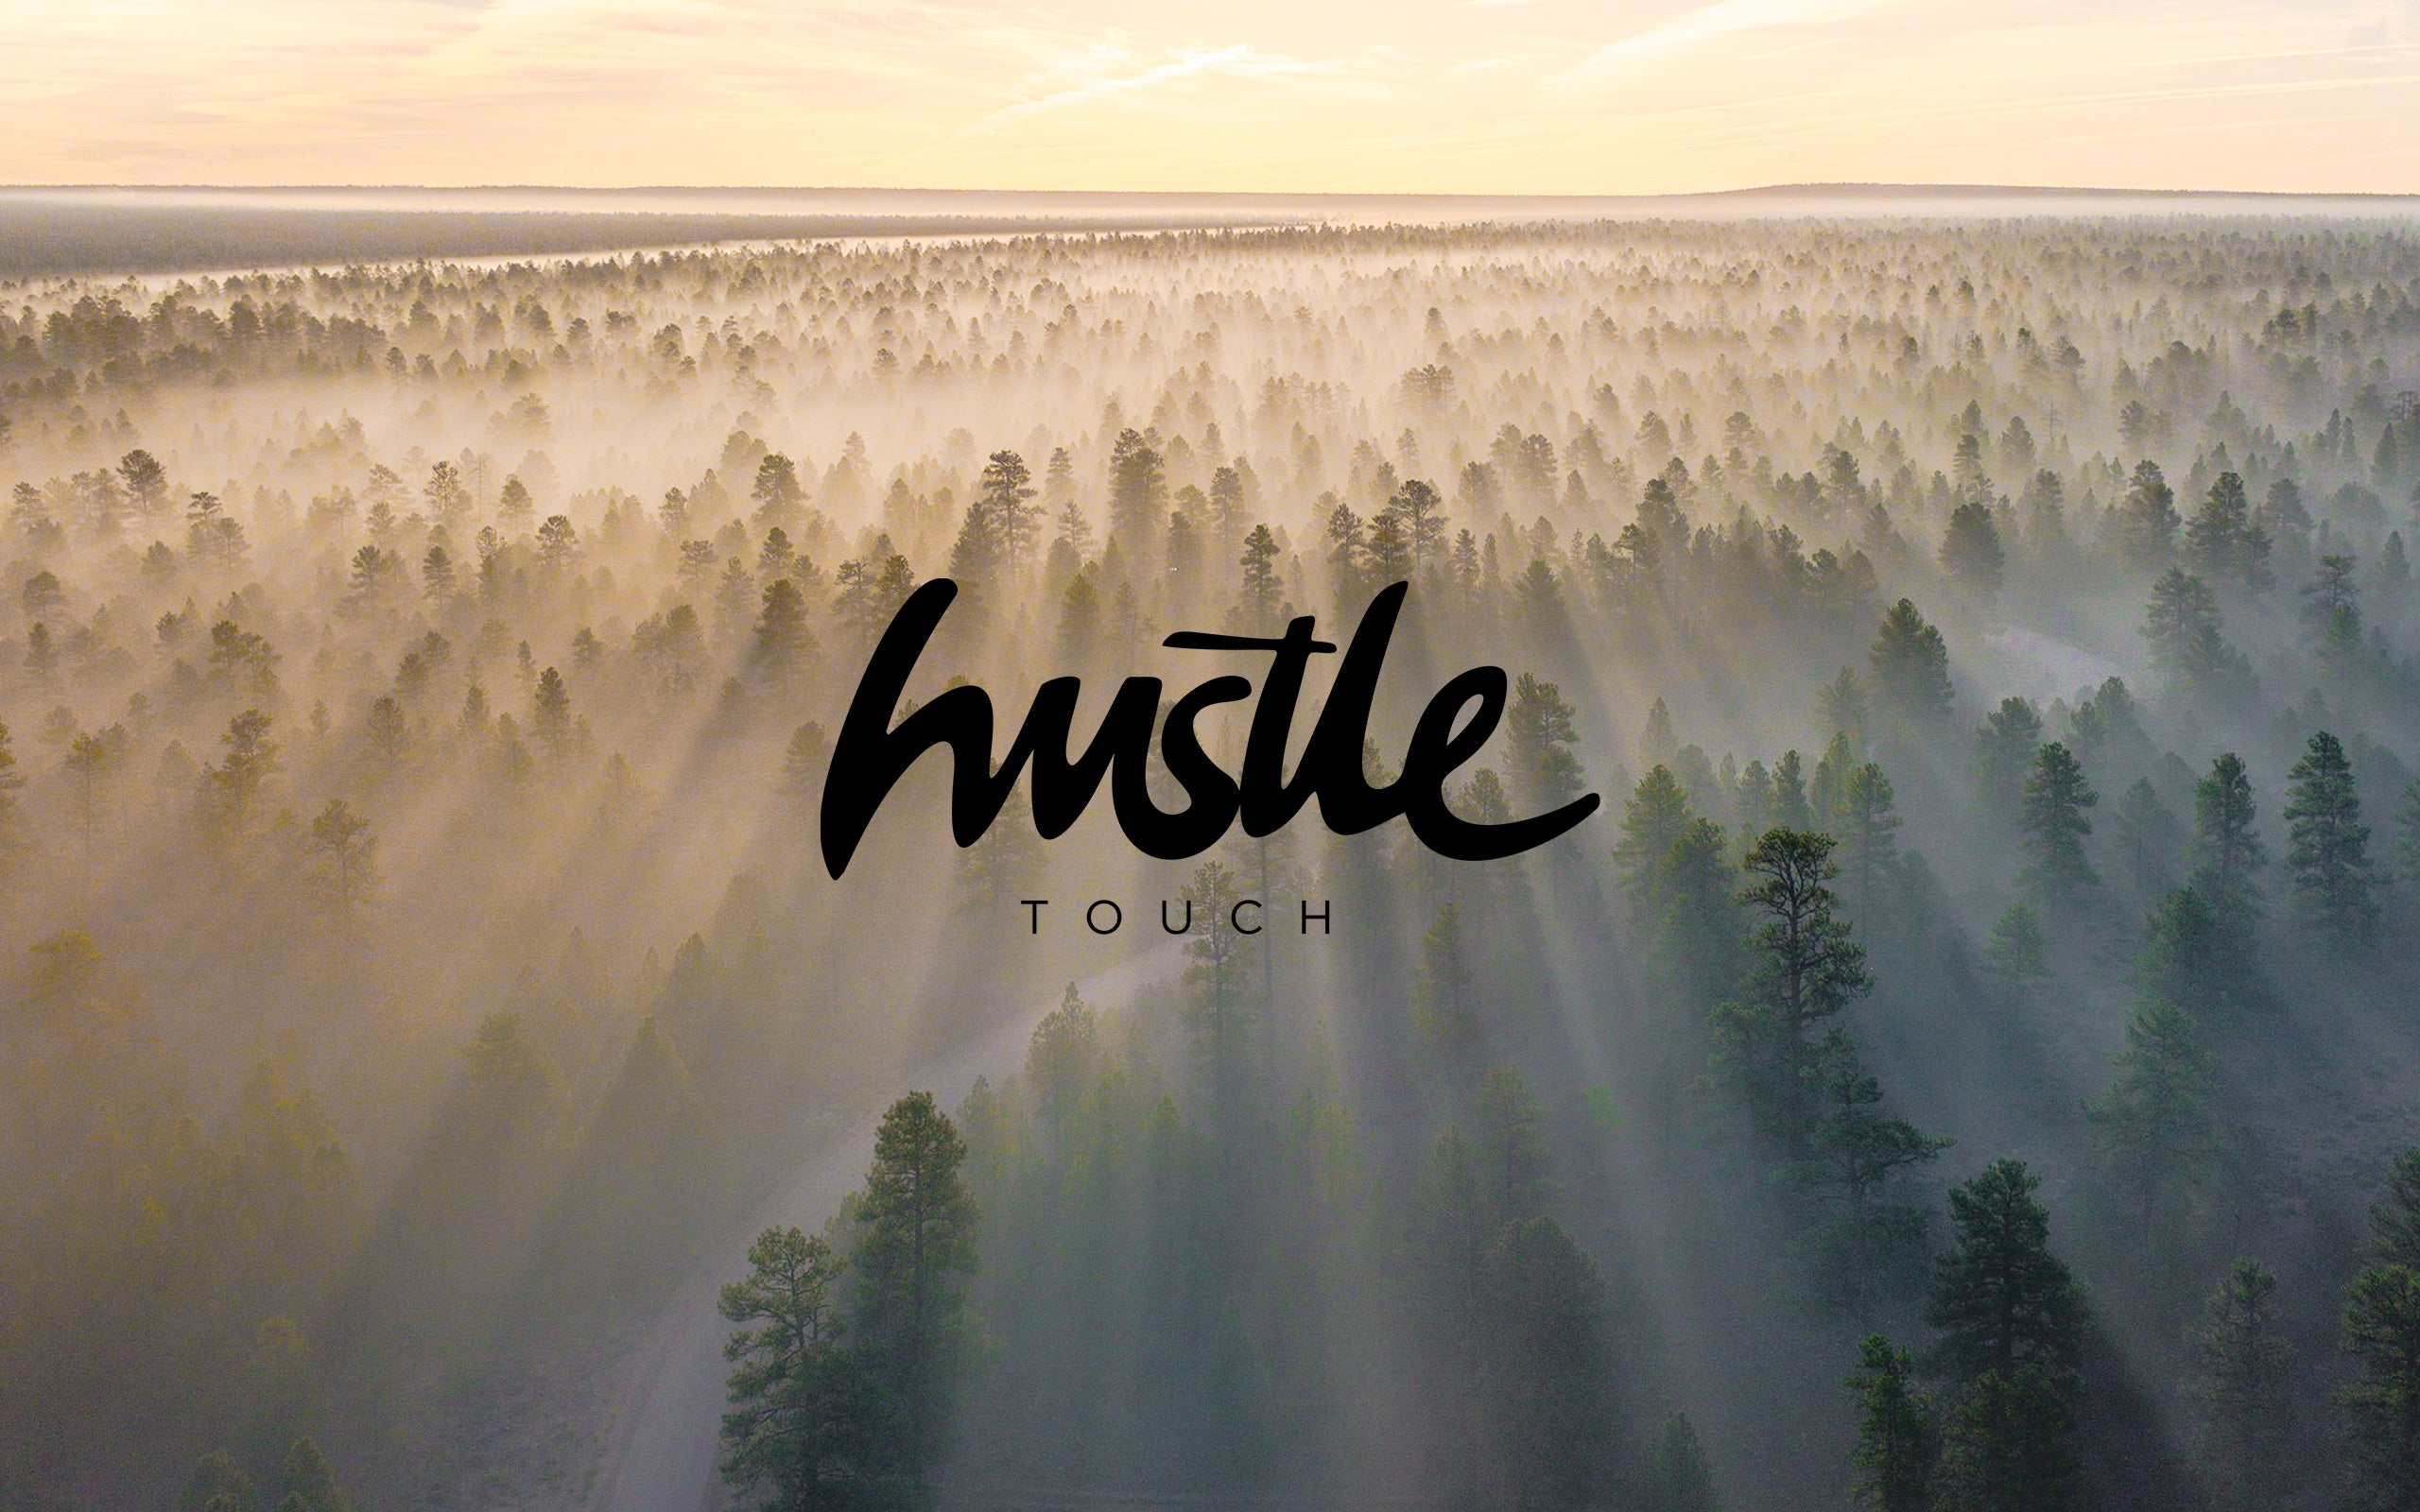 Hustle Touch Wallpaper 021 - Hustle Touch